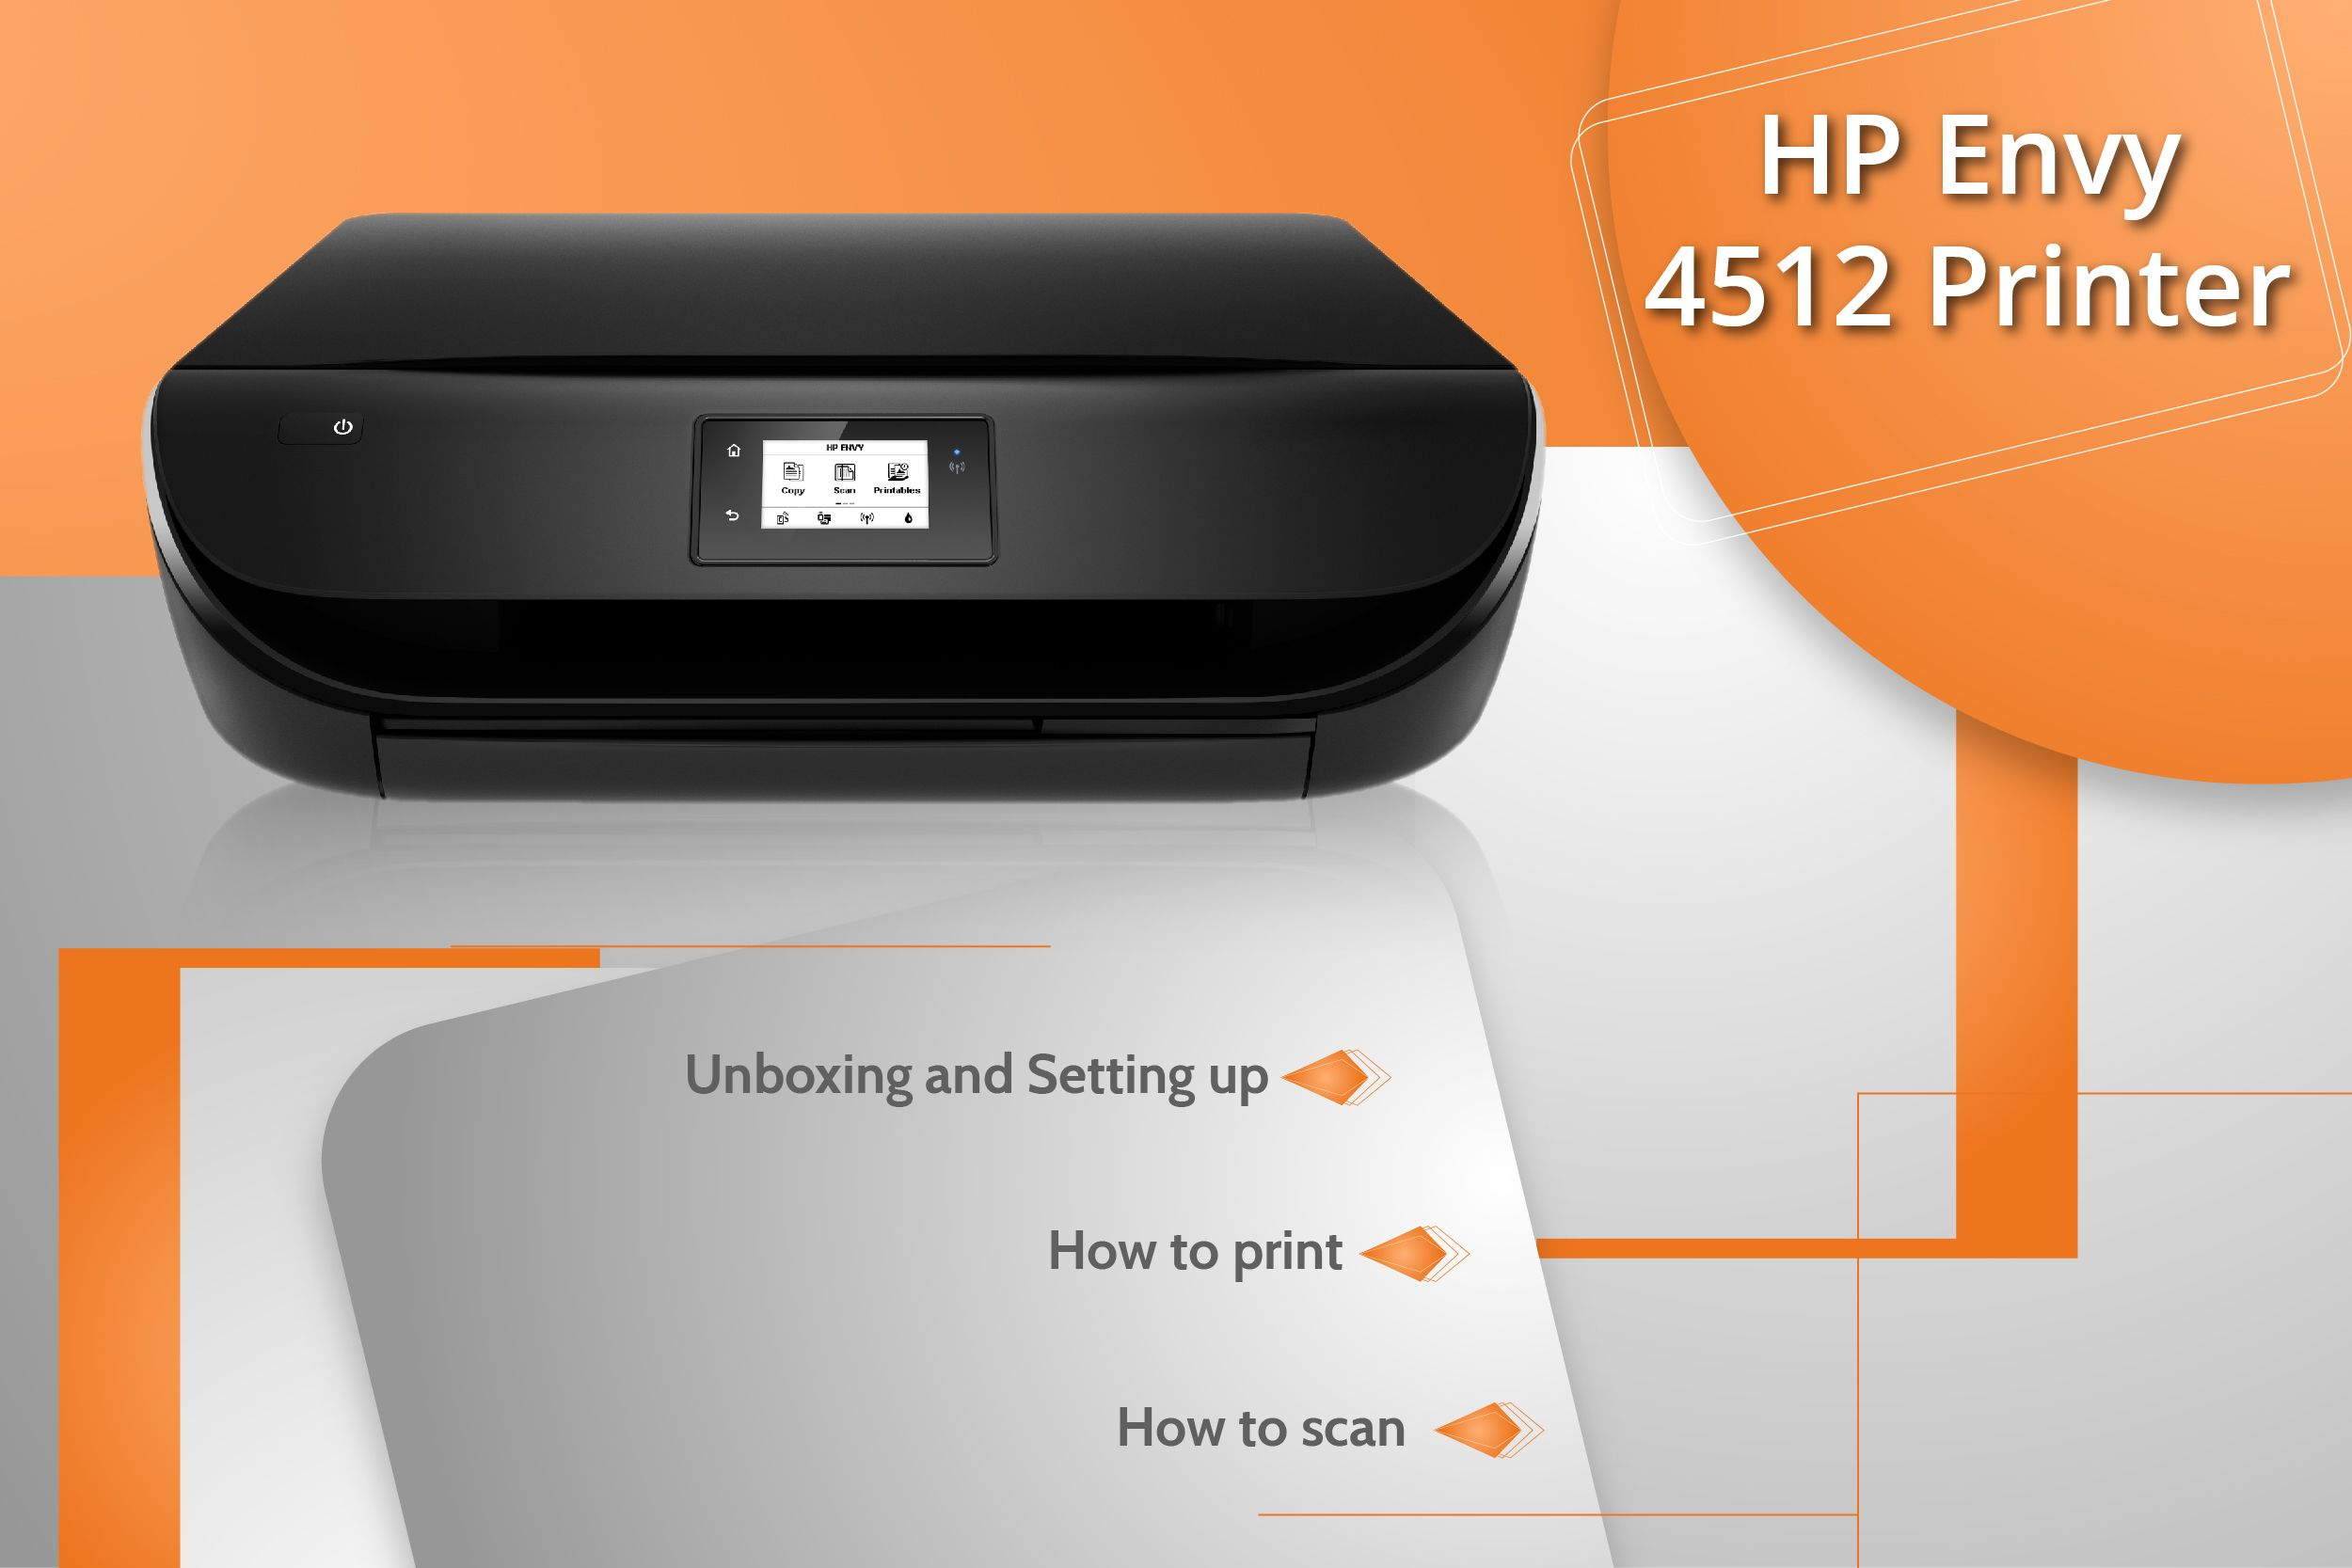 Complete easy guidance for Unboxing & Setting your HP Envy